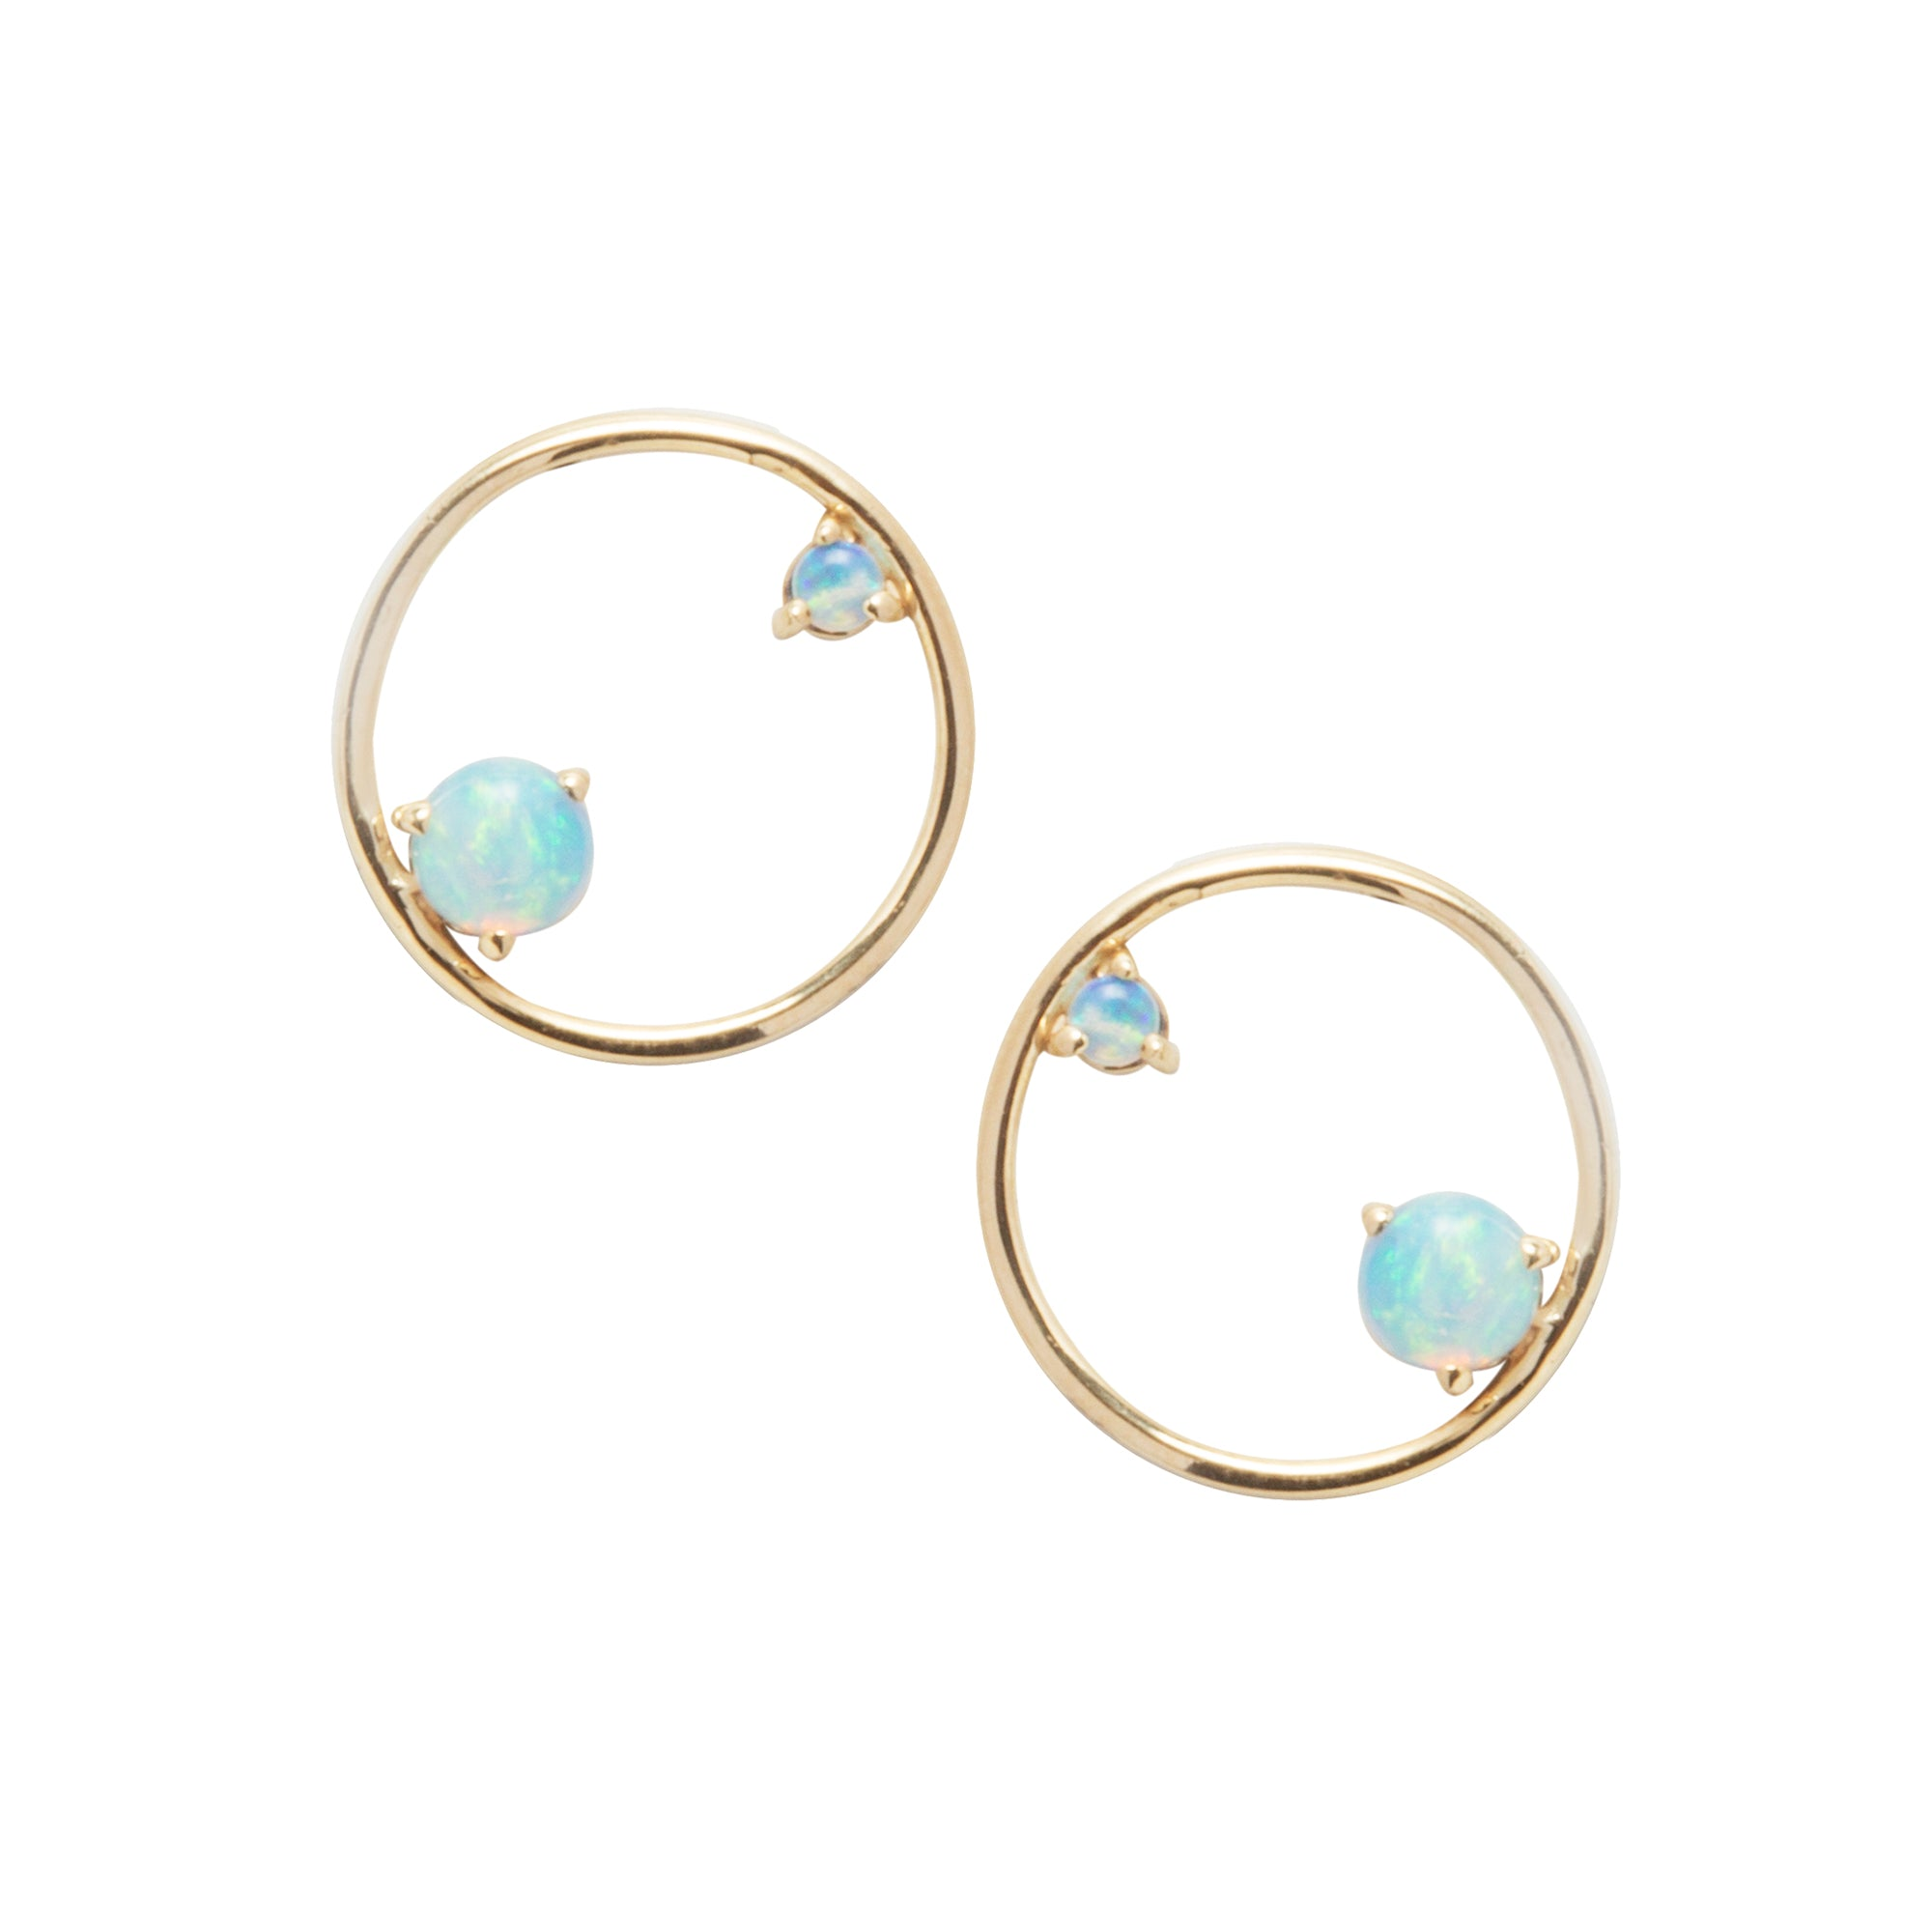 Gold Opal Circle Earrings by Wwake for Broken English Jewelry